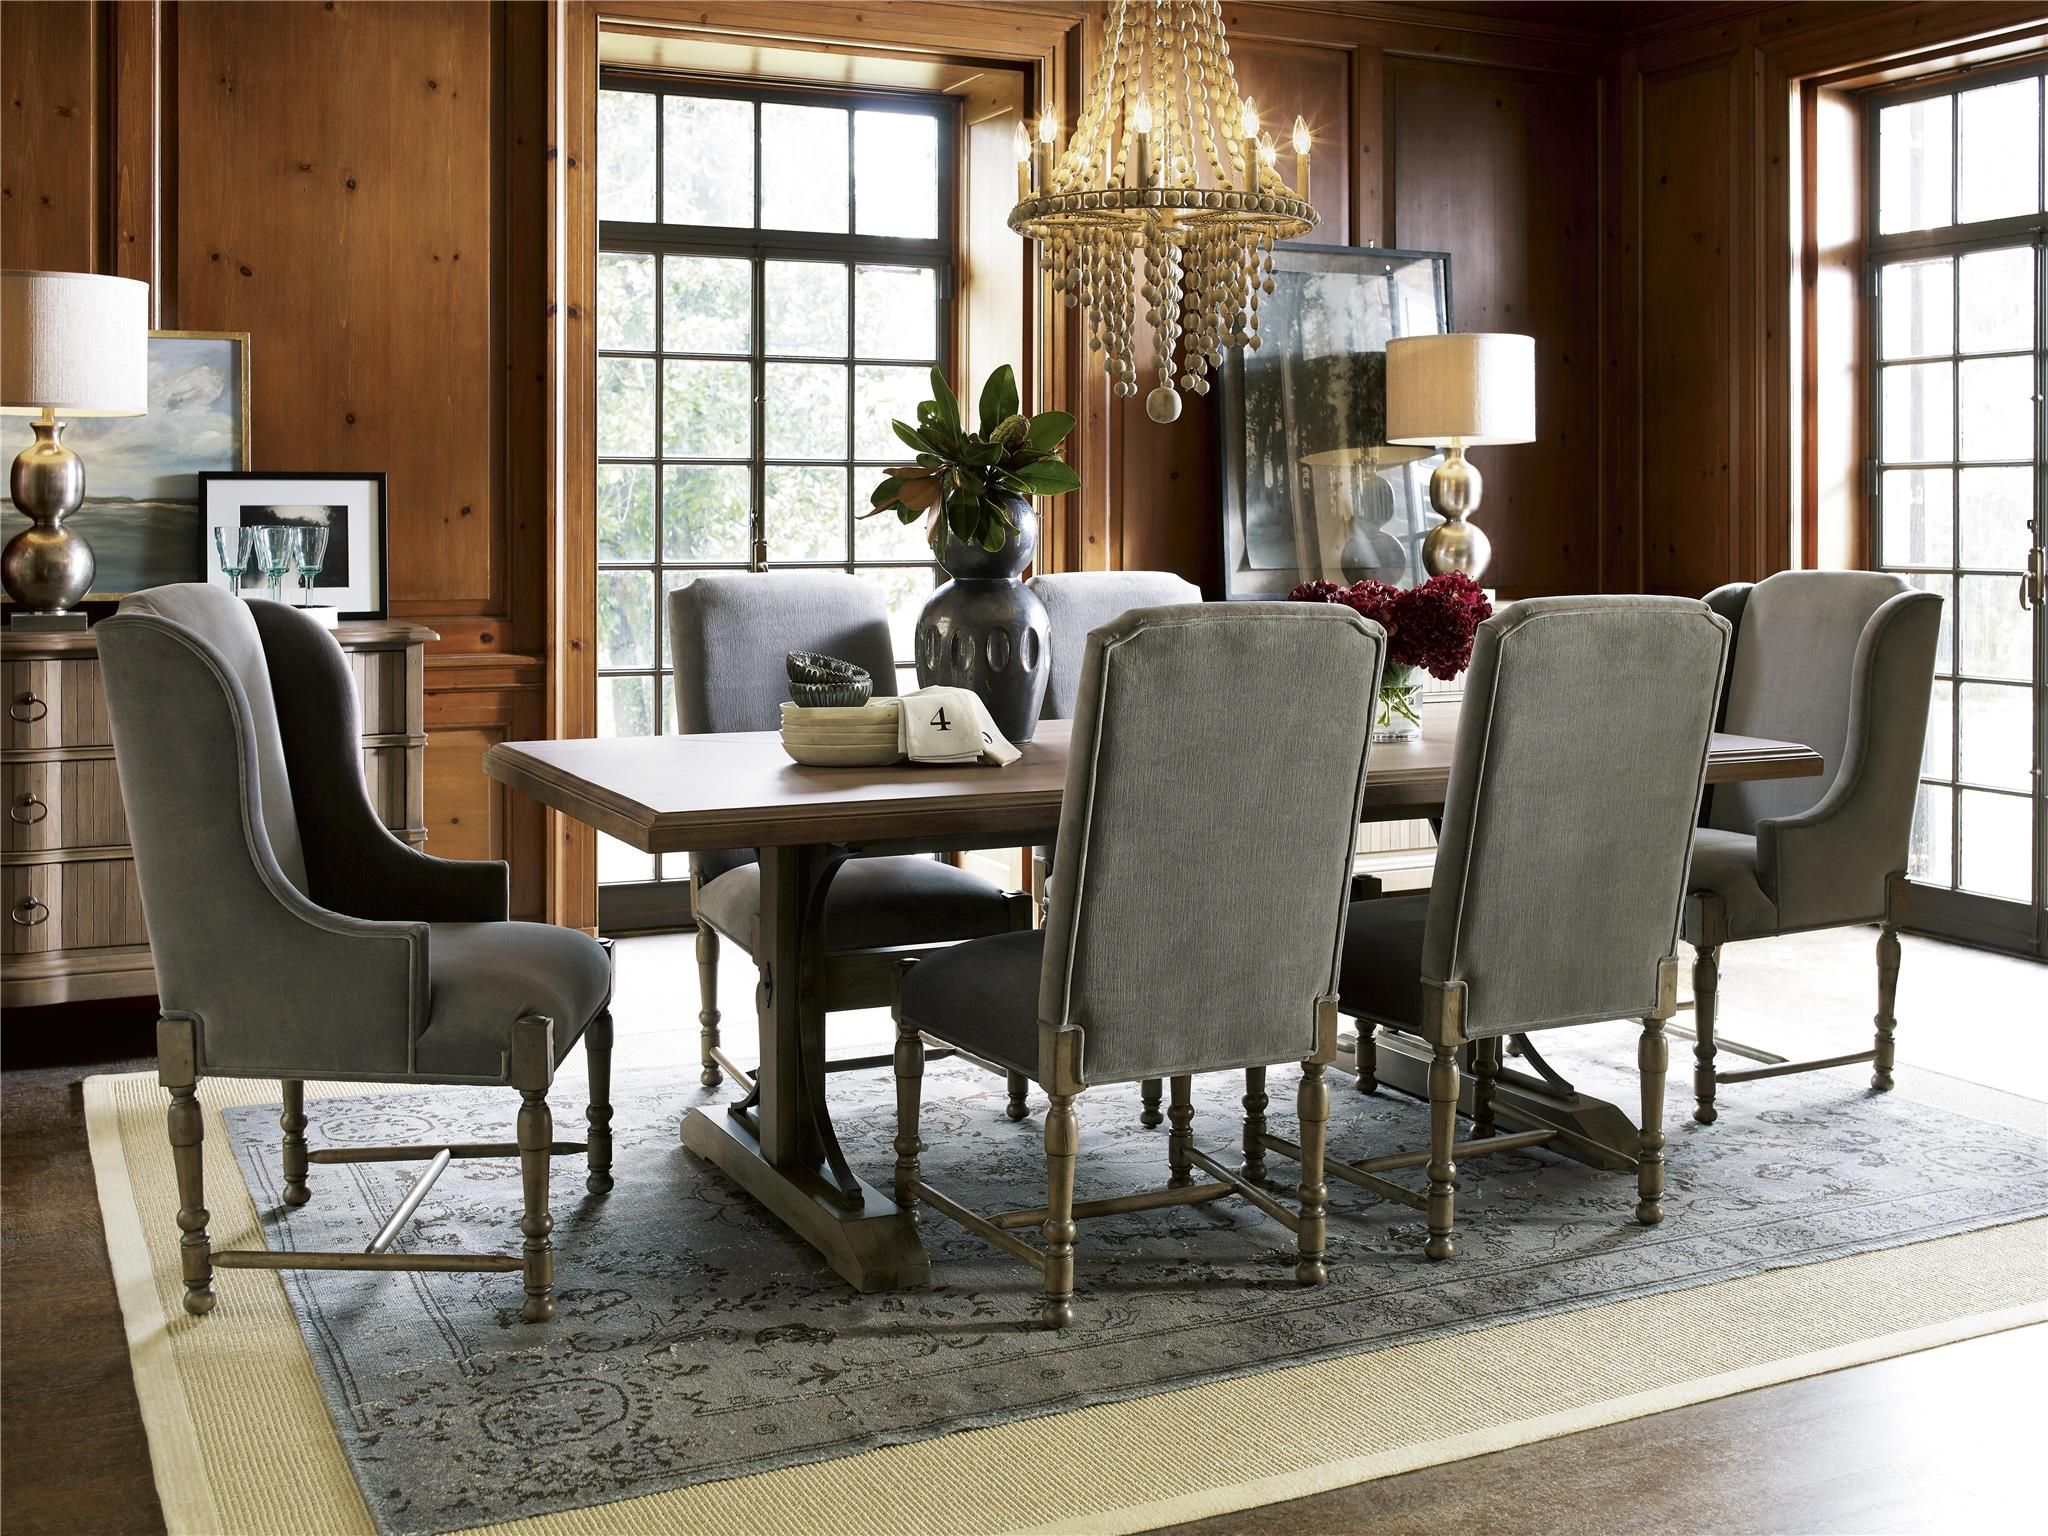 Universal Furniture  Authenticity  Oxford Street Table  Skinner Cool Universal Furniture Dining Room Set Inspiration Design